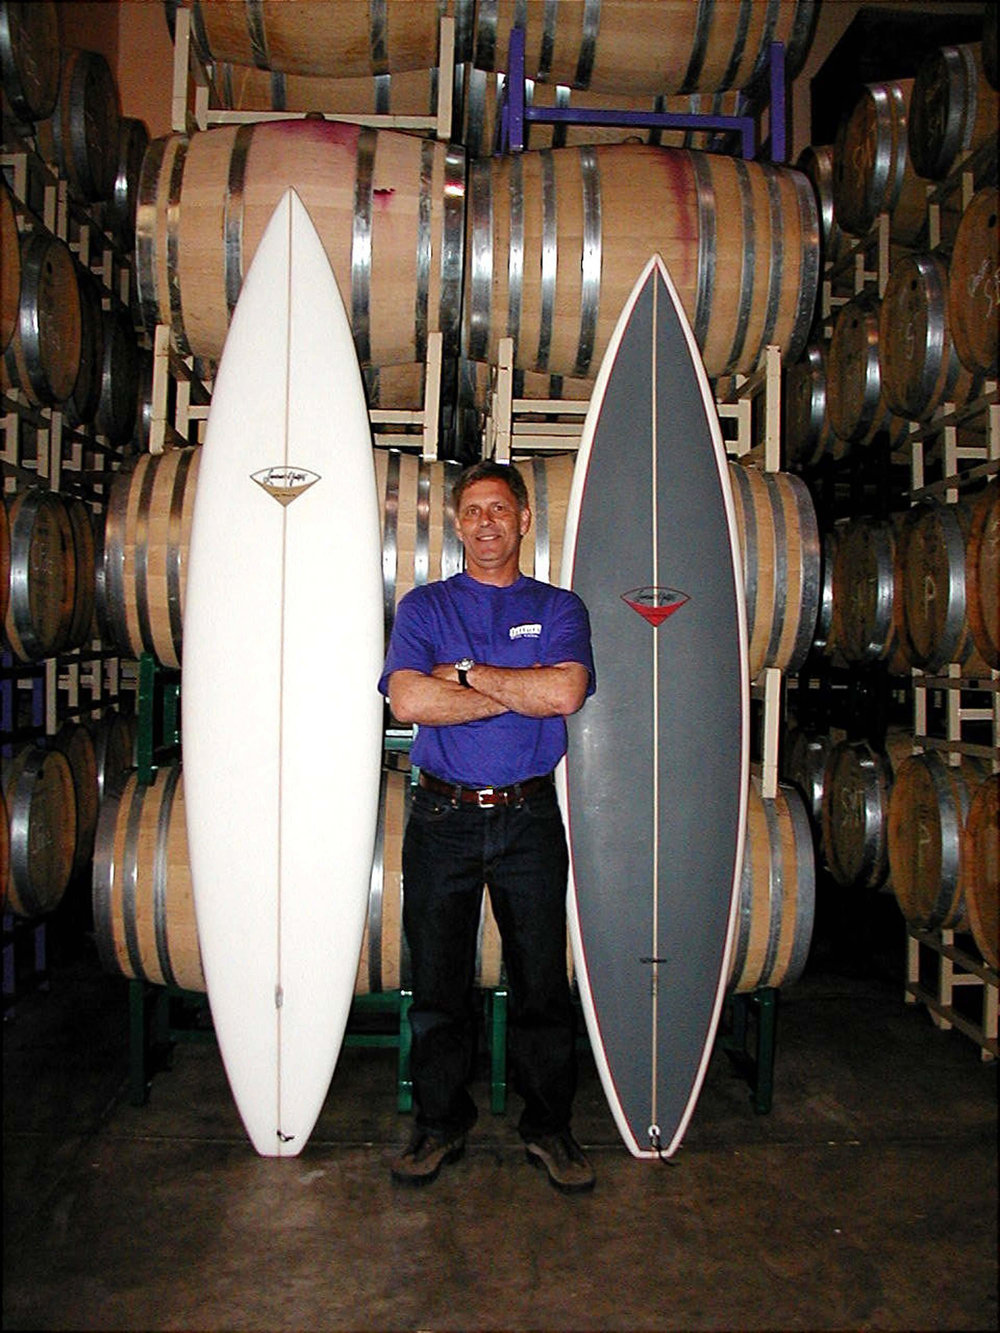 craig-jaffurs-w-new-surfboards-2_jpg.jpg